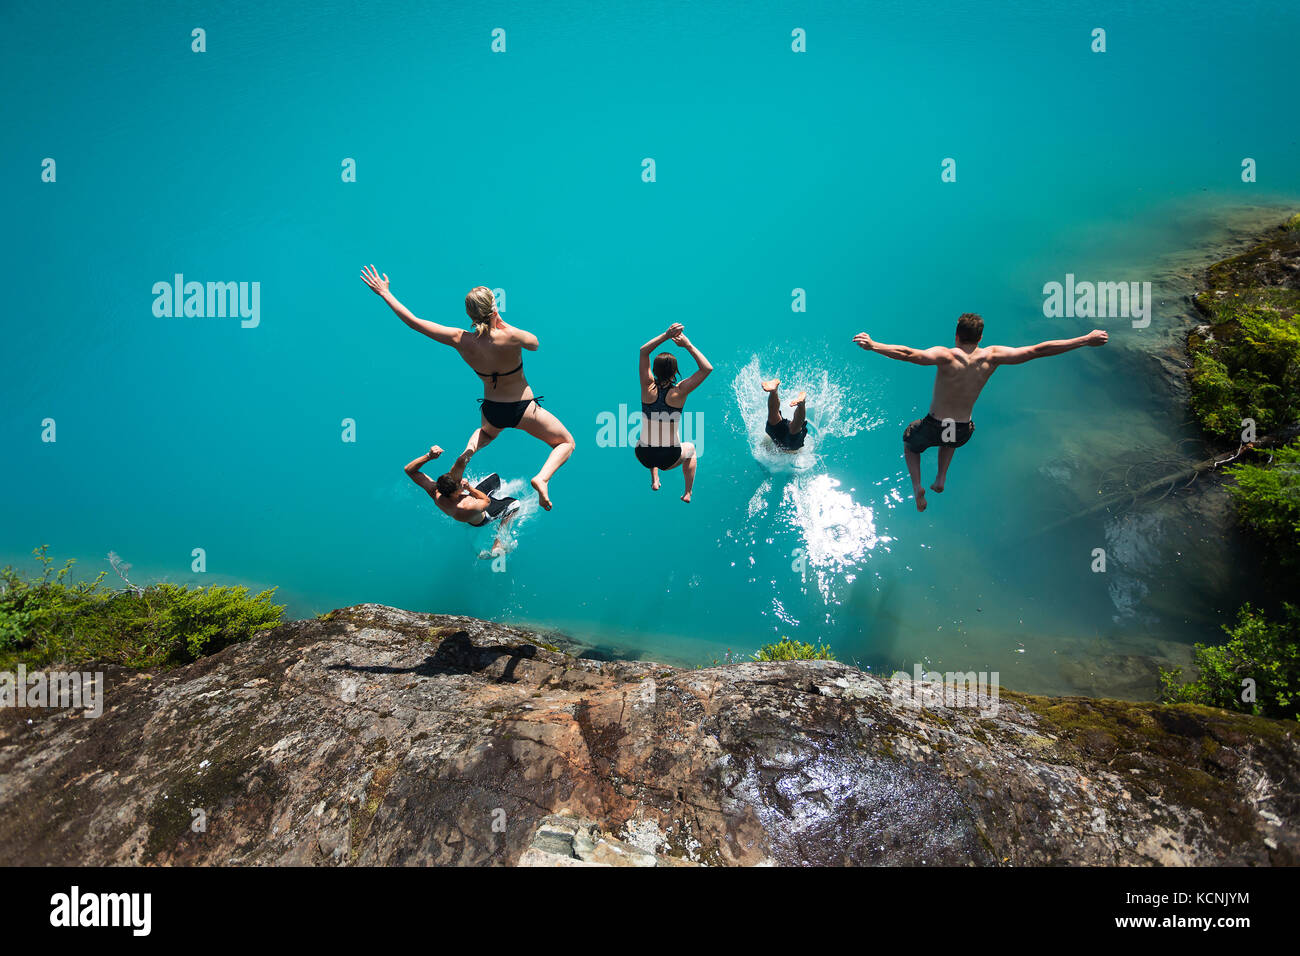 Five friends dive into the turquoise waters of Century Sam lake in Strathcona Park, Vancouver Island, British Columbia, - Stock Image